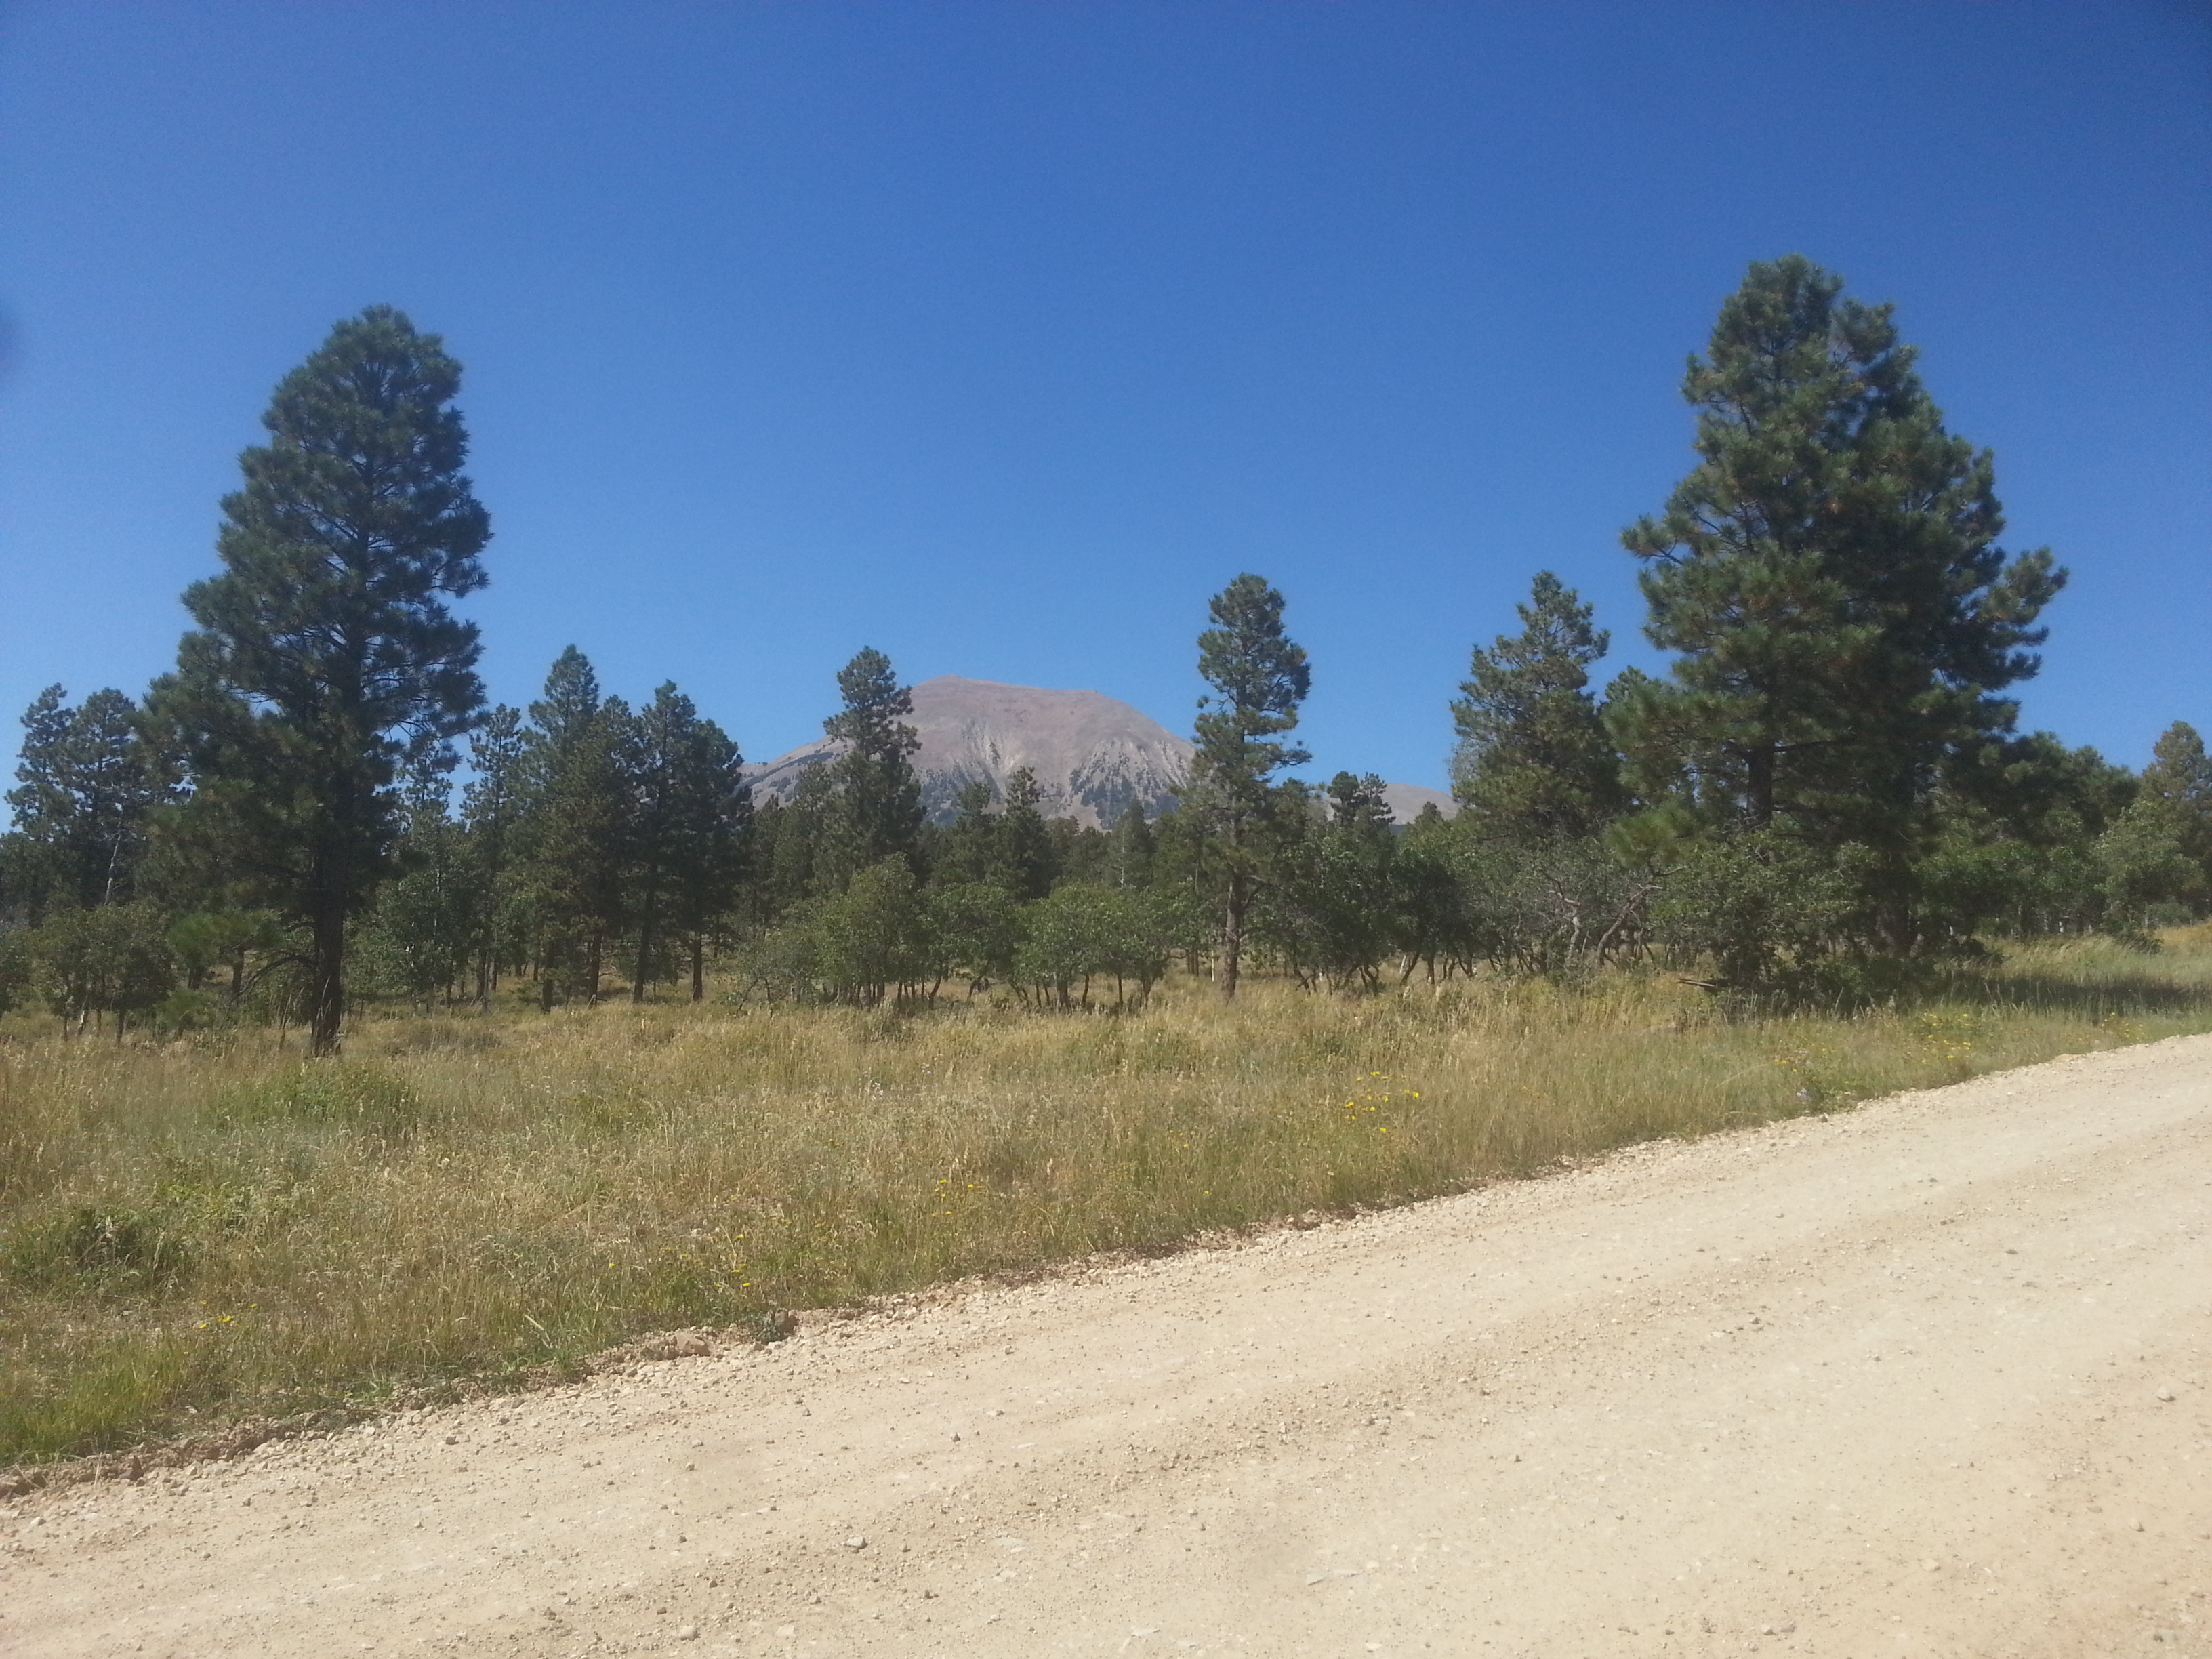 getting closer to the mountain, and the desert brush gives way to forest at elevation